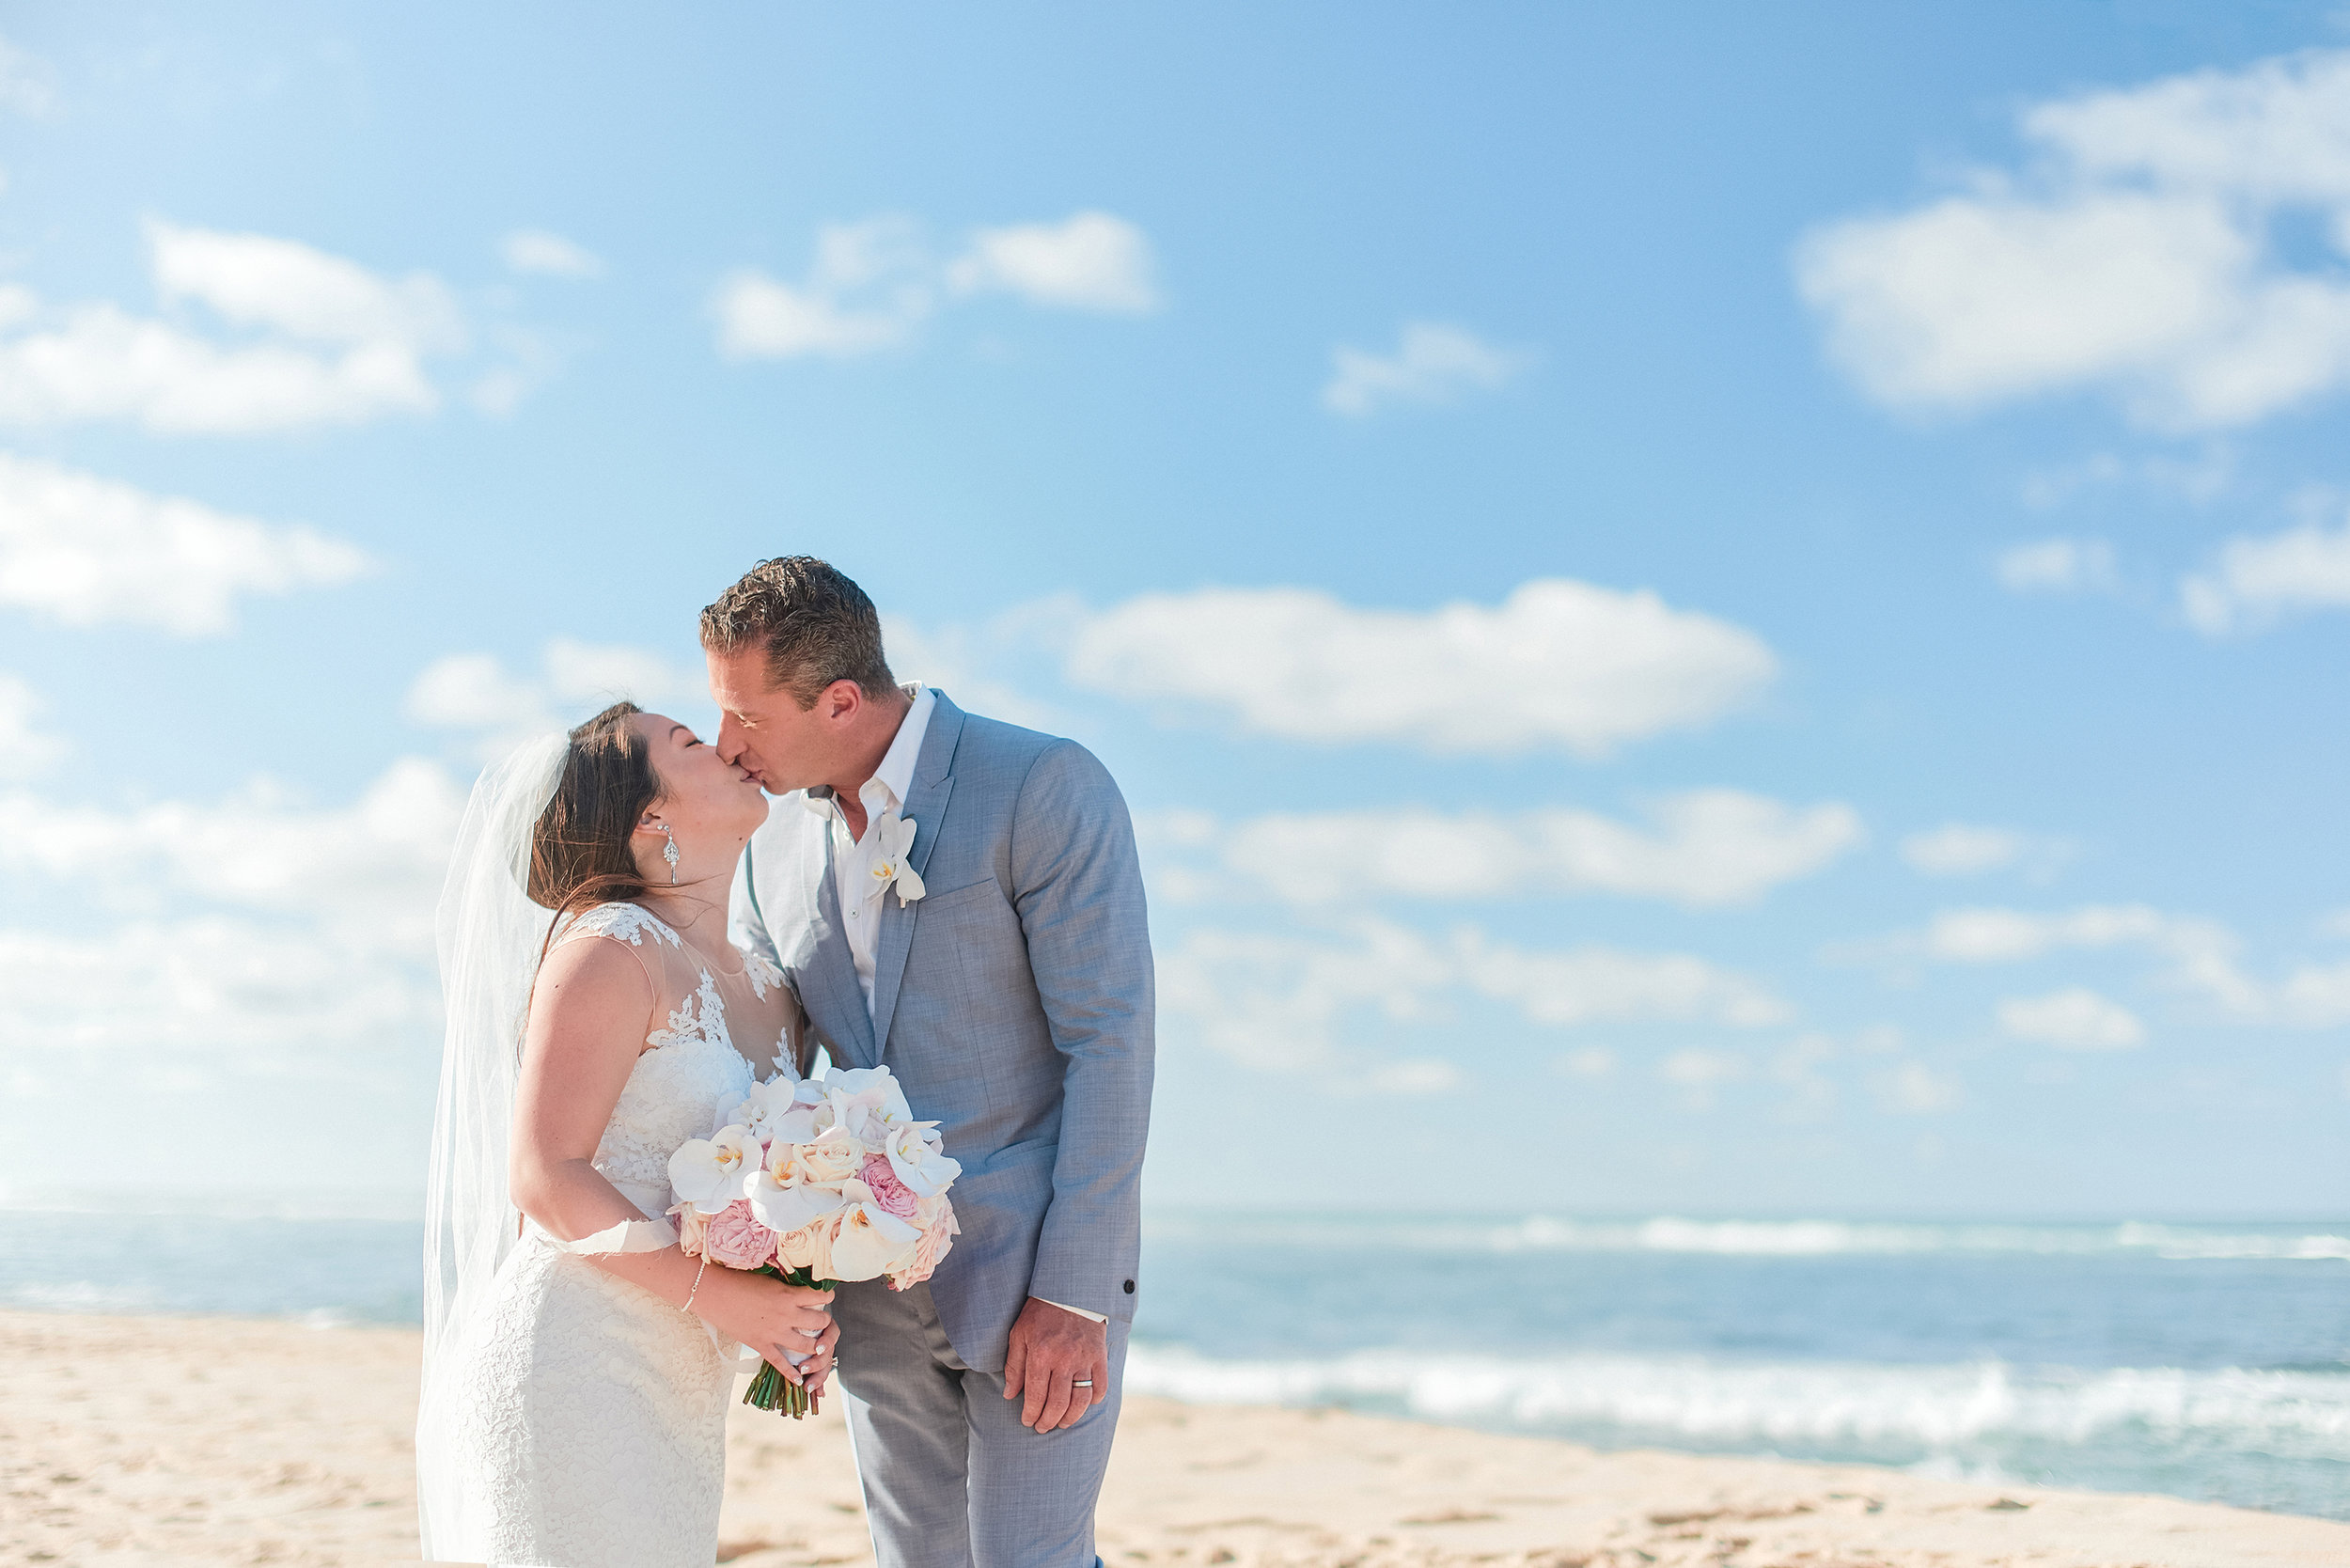 turtle bay resort wedding north shore oahu stephen ludwig photography- terry and isabel.jpg